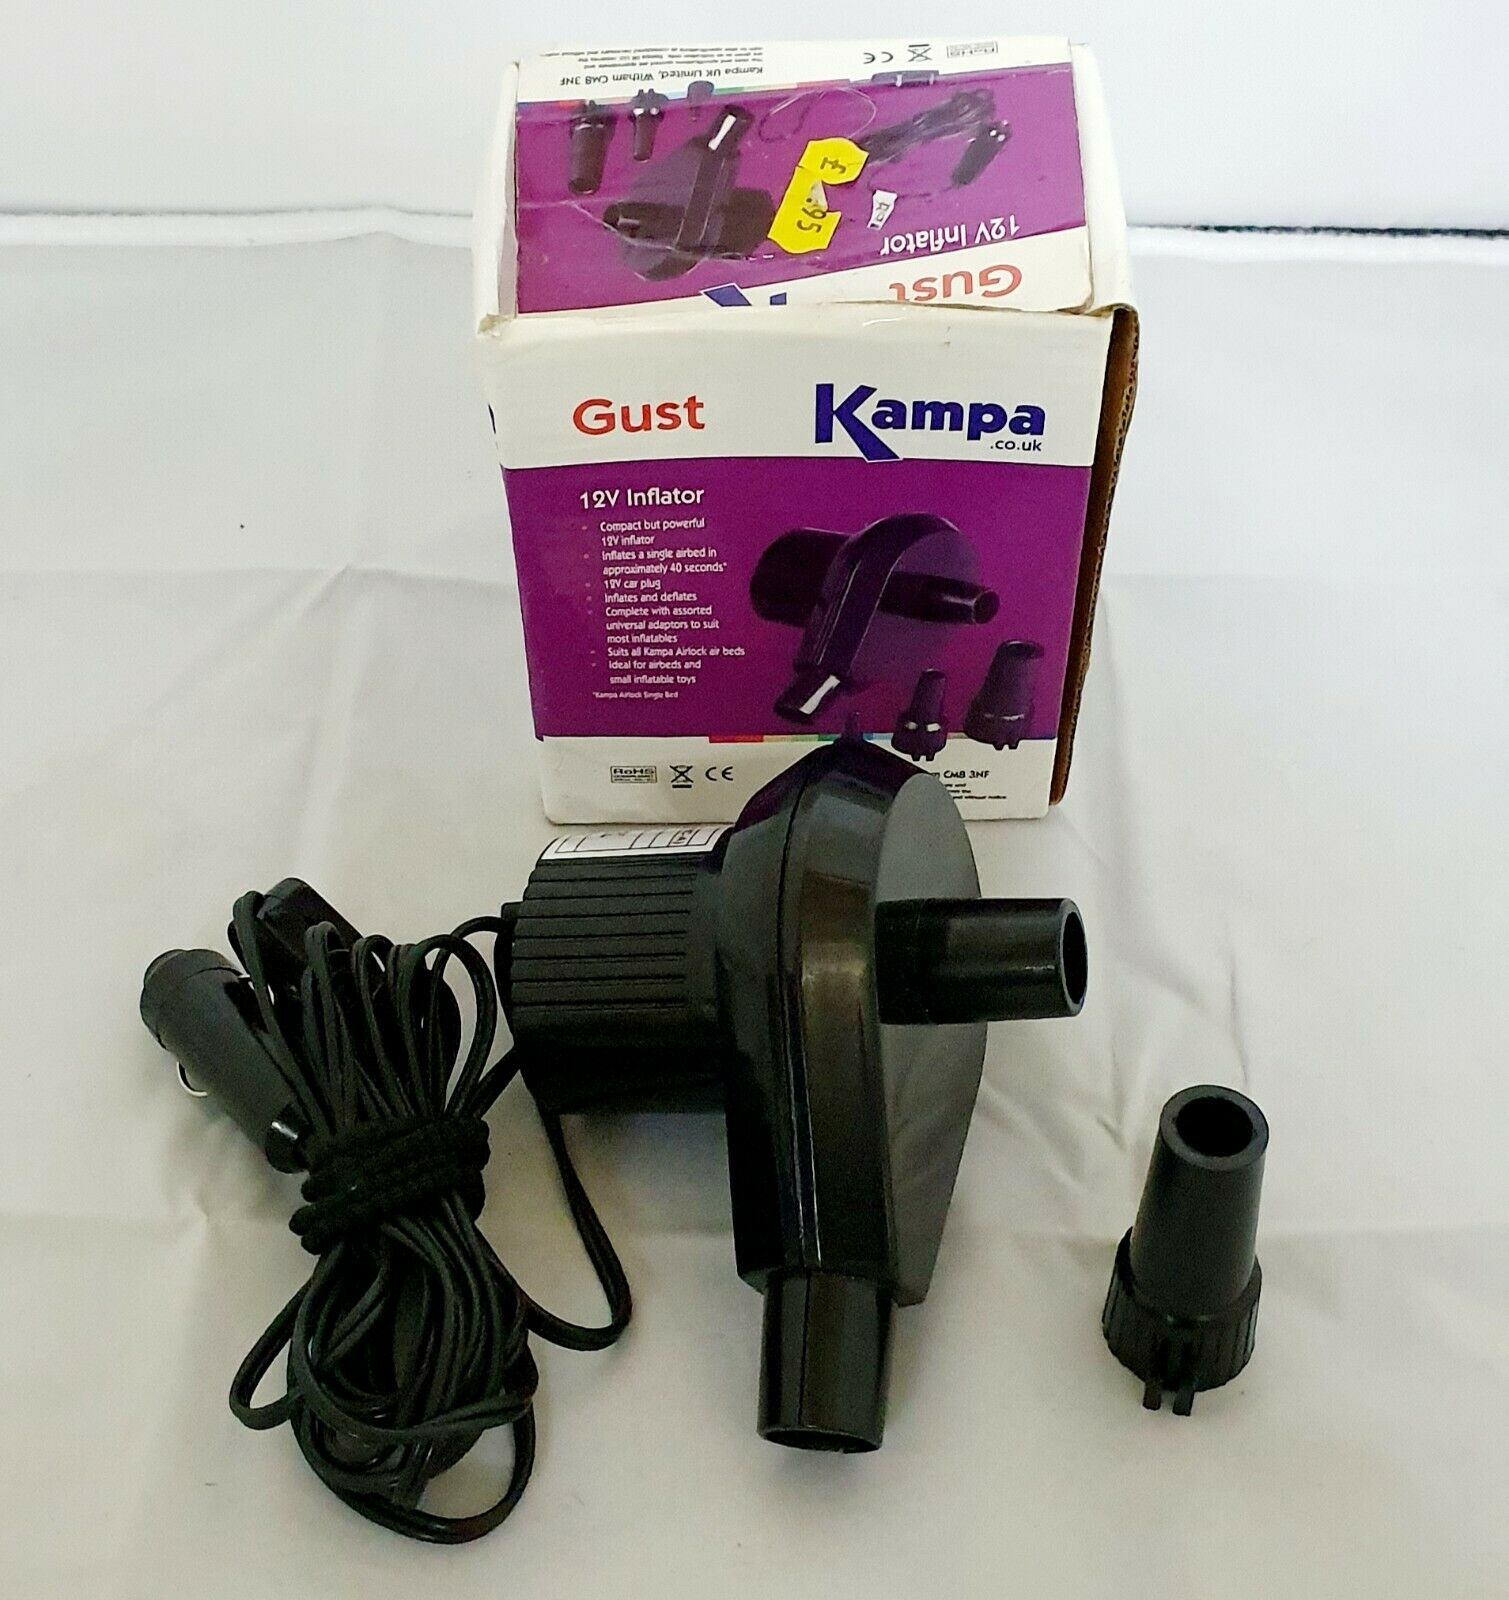 Camping Mattress and Bed inflatable Pump RRP £9.99 New KAMPA Gust 12V Inflator